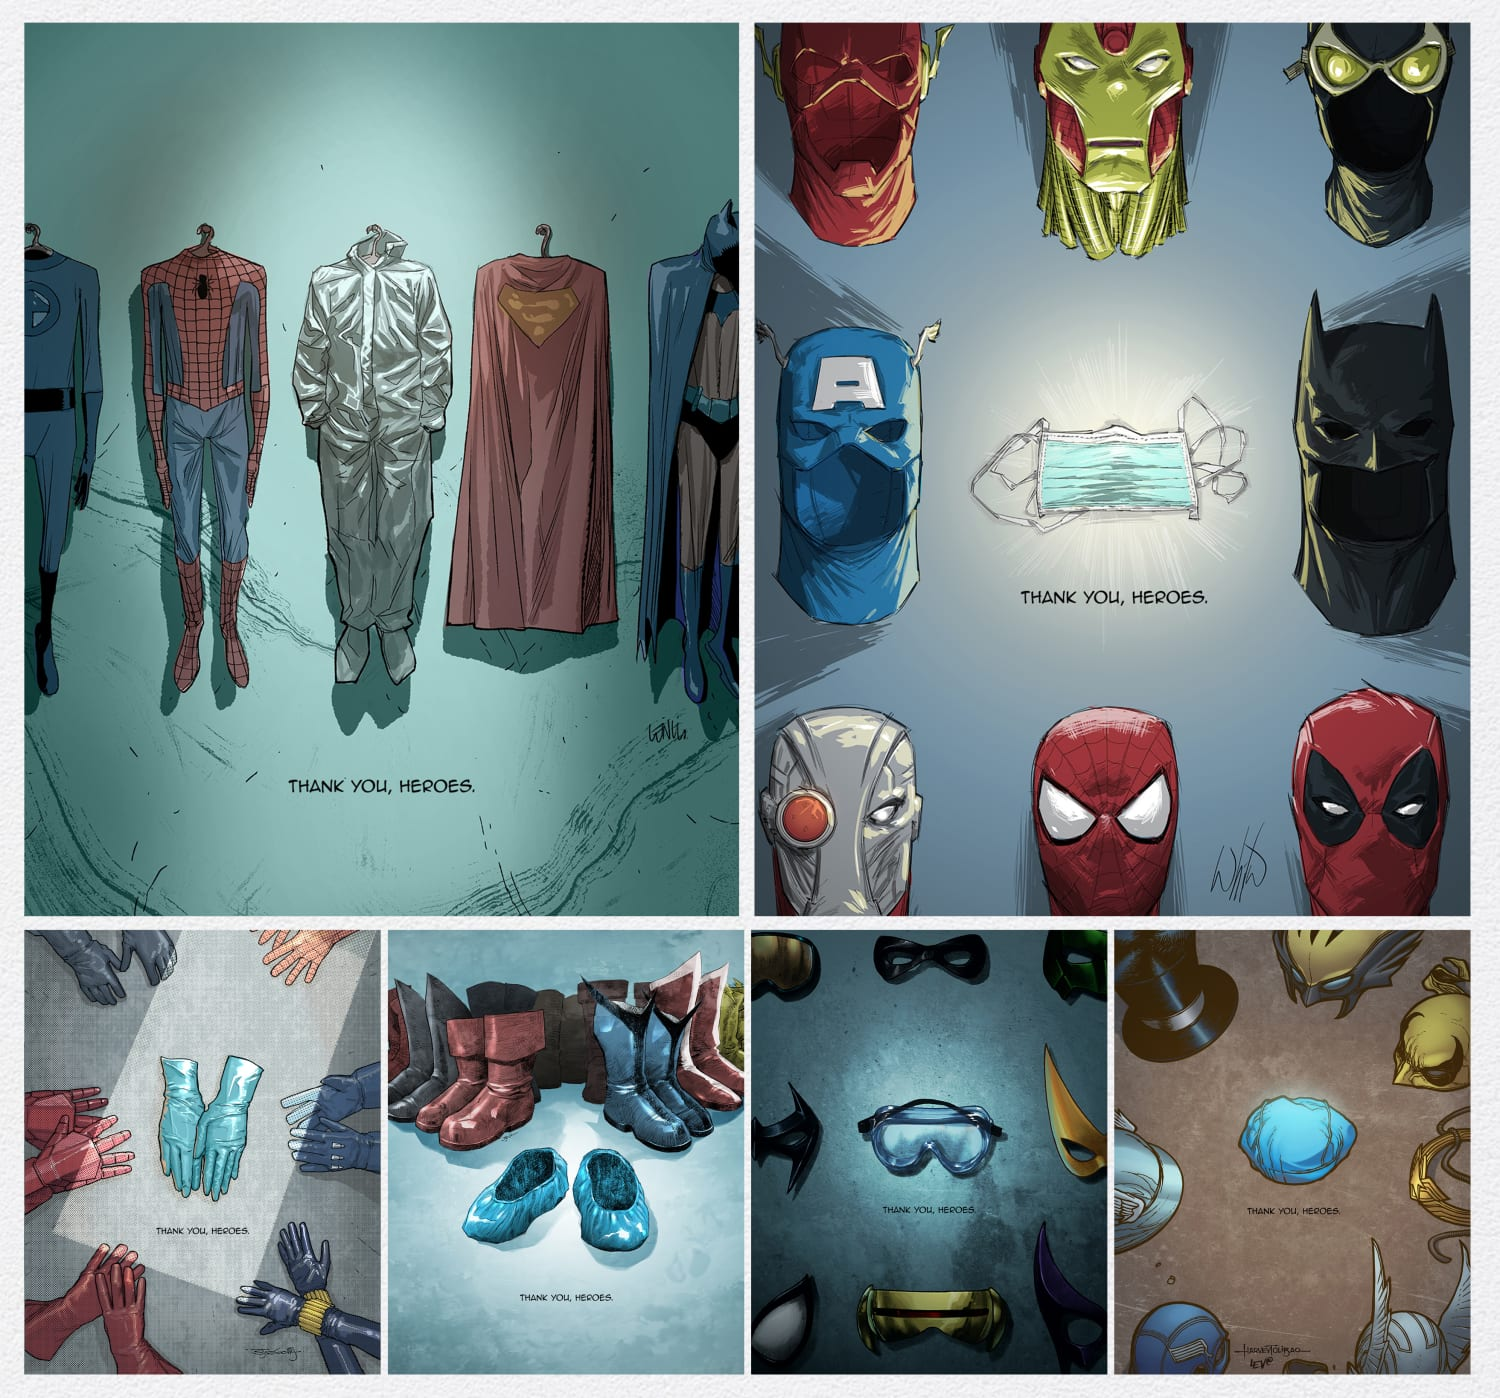 Suits For Heroes board